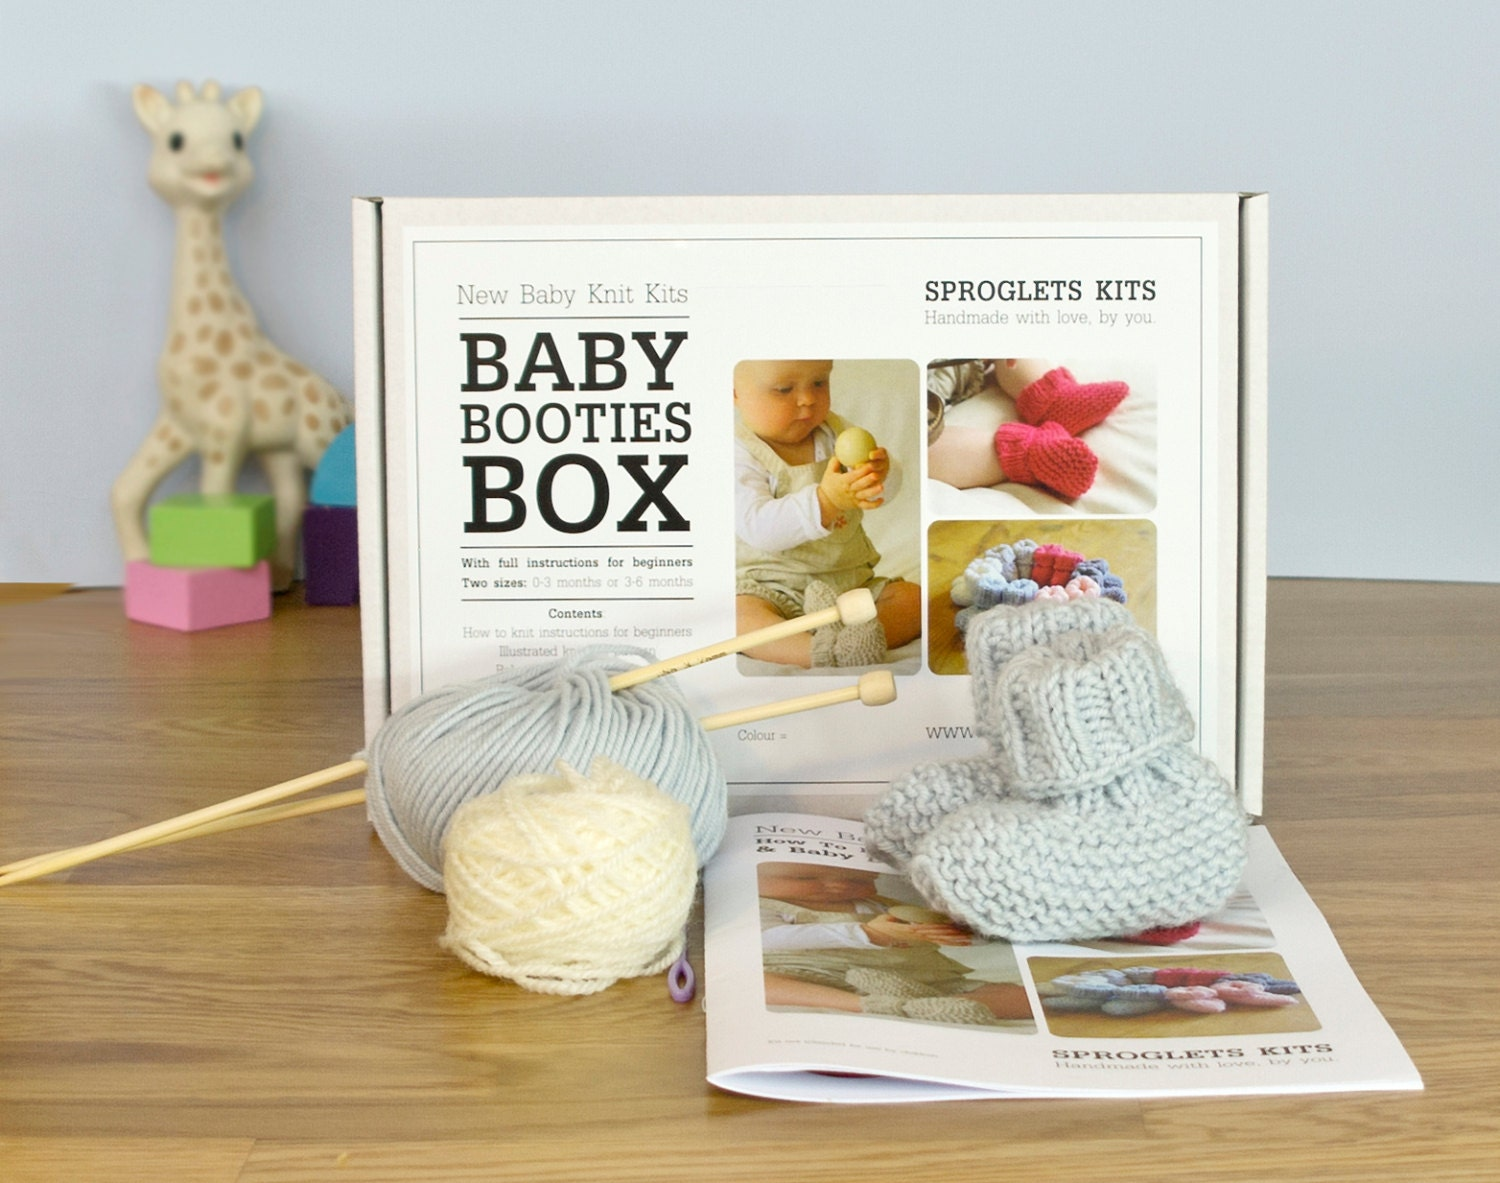 Knitting Kit For Beginners Singapore : Baby booties beginner knitting kit learn to knit easy